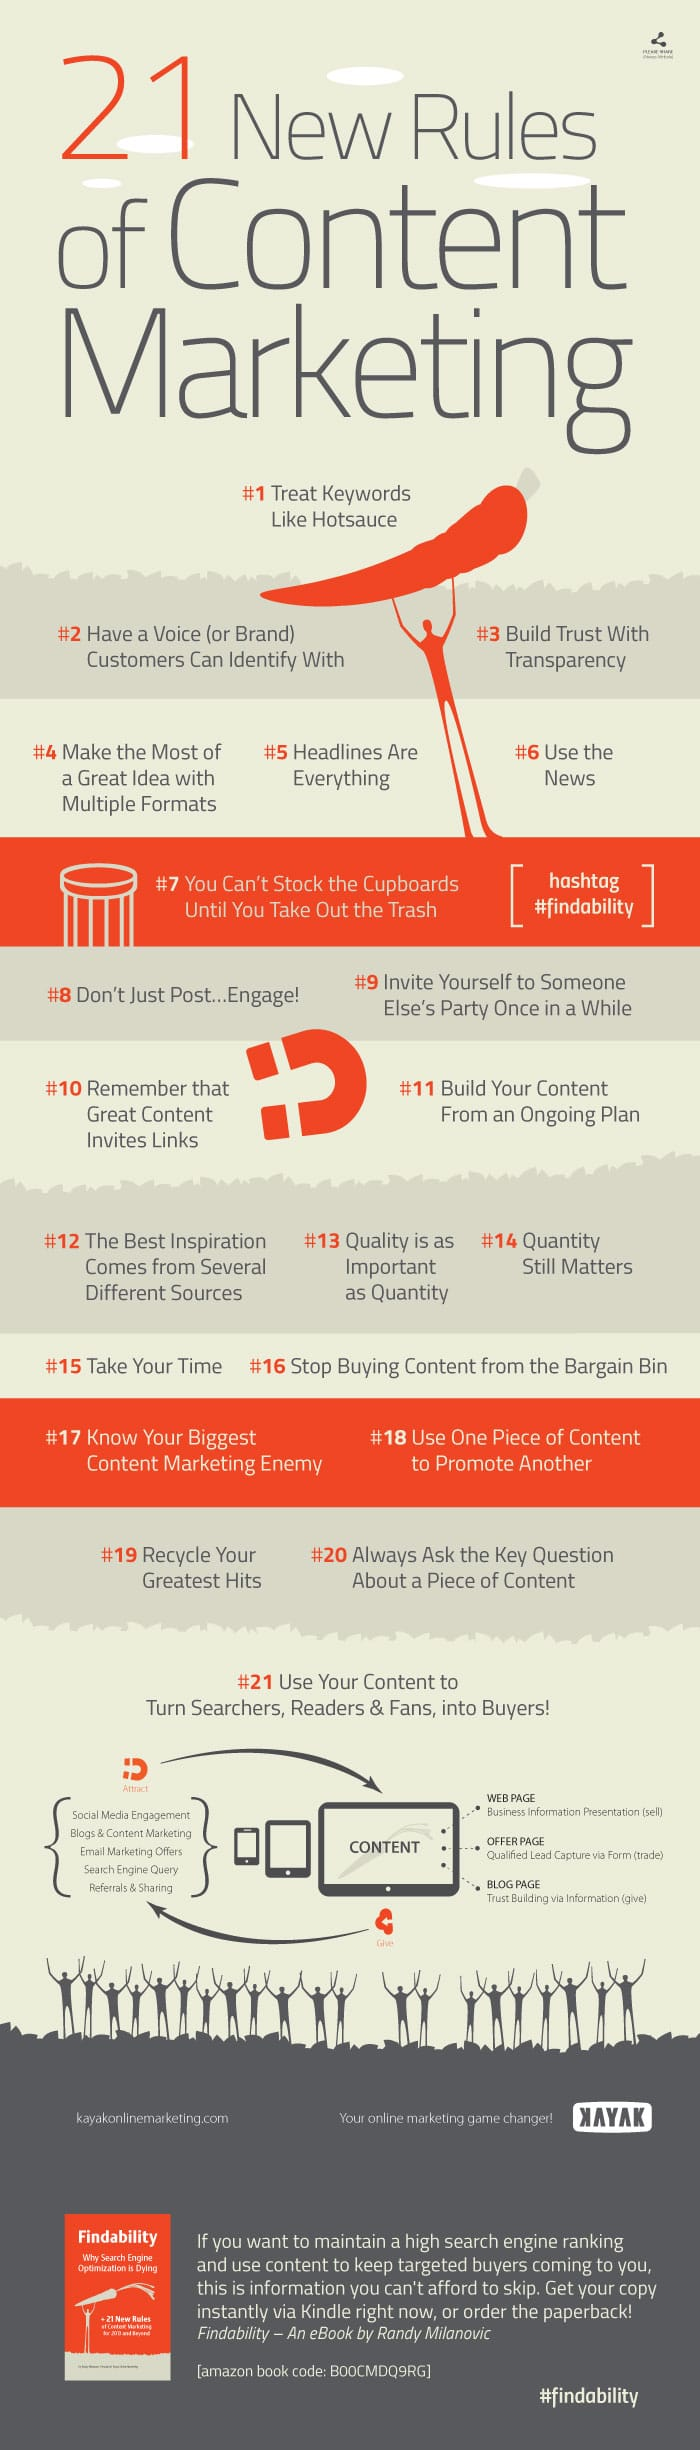 21 New Content Marketing Rules [Infographic]